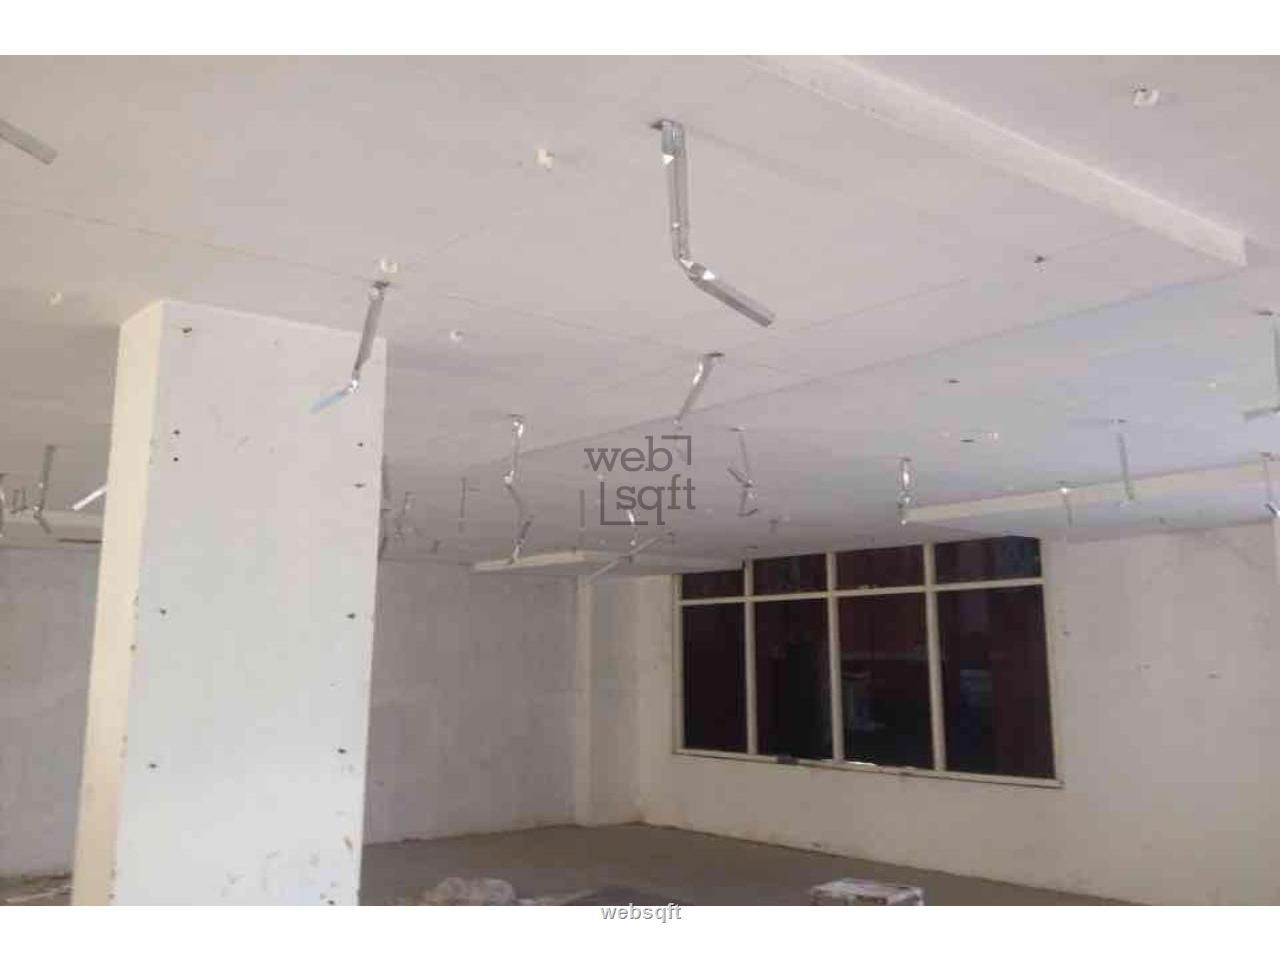 Websqft - Commercial Office Space - Property for Sale - in 2150Sq-ft/Manikonda at Rs 14942500